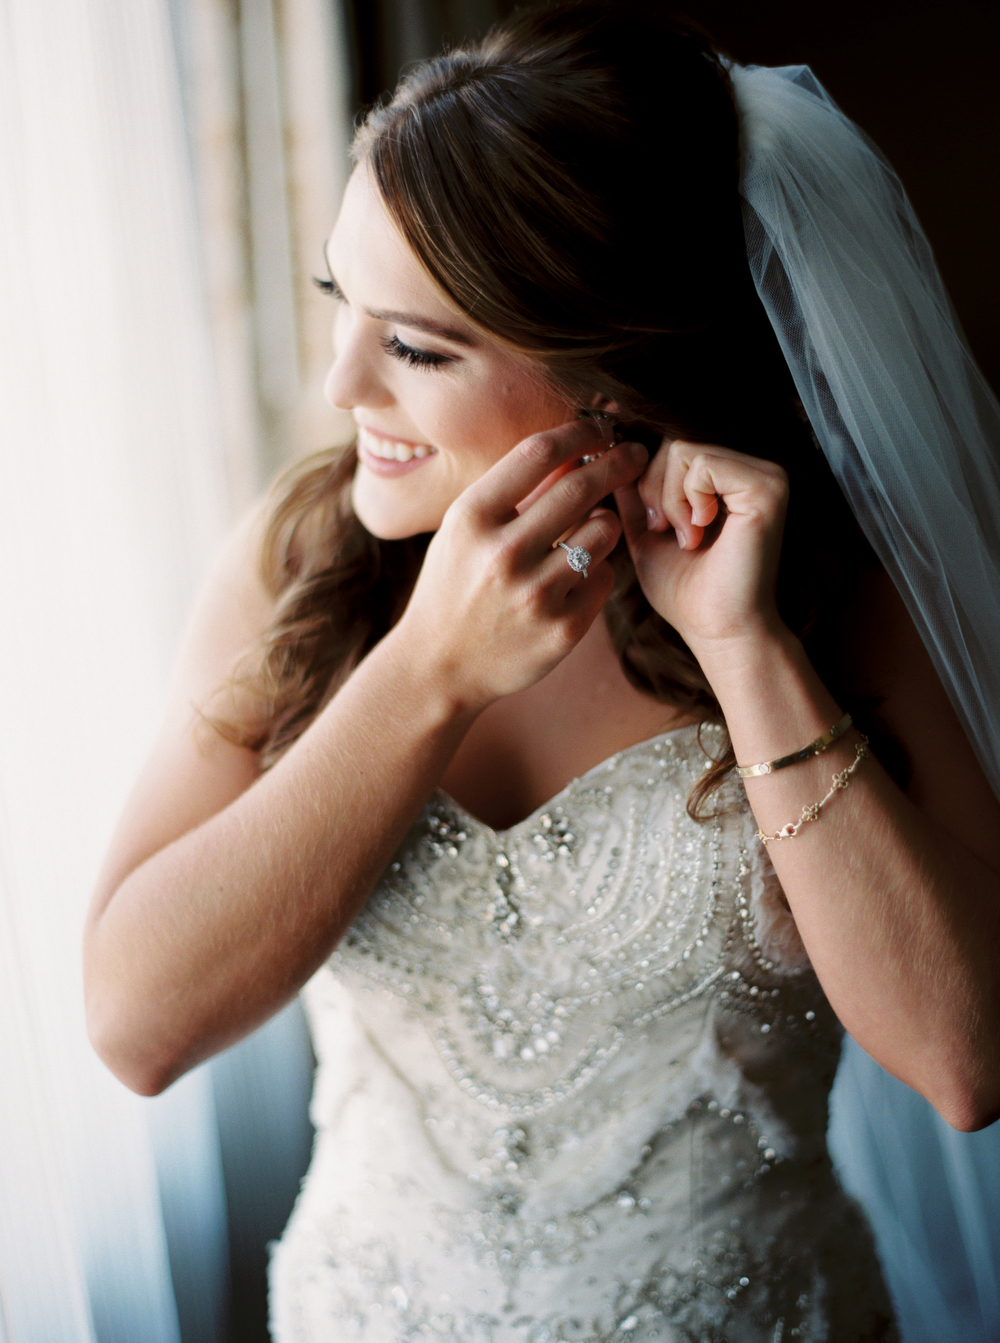 bride smiling as she puts on her earrings standing in the light of a window with veil trailing down